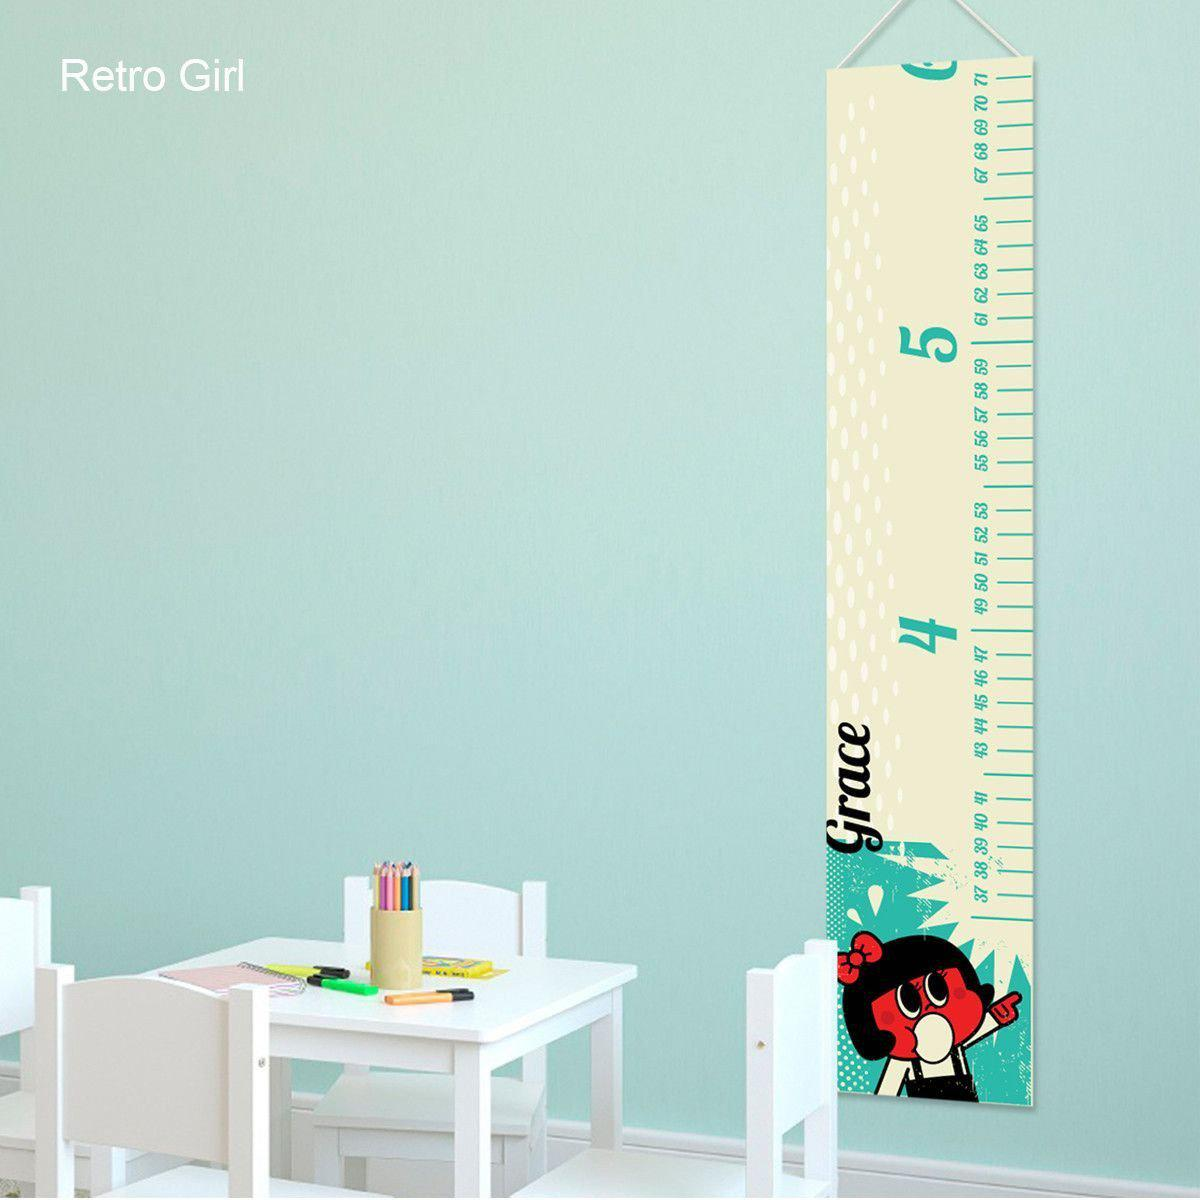 Height-Charts-for-Girls-Growth-Chart-for-Girls